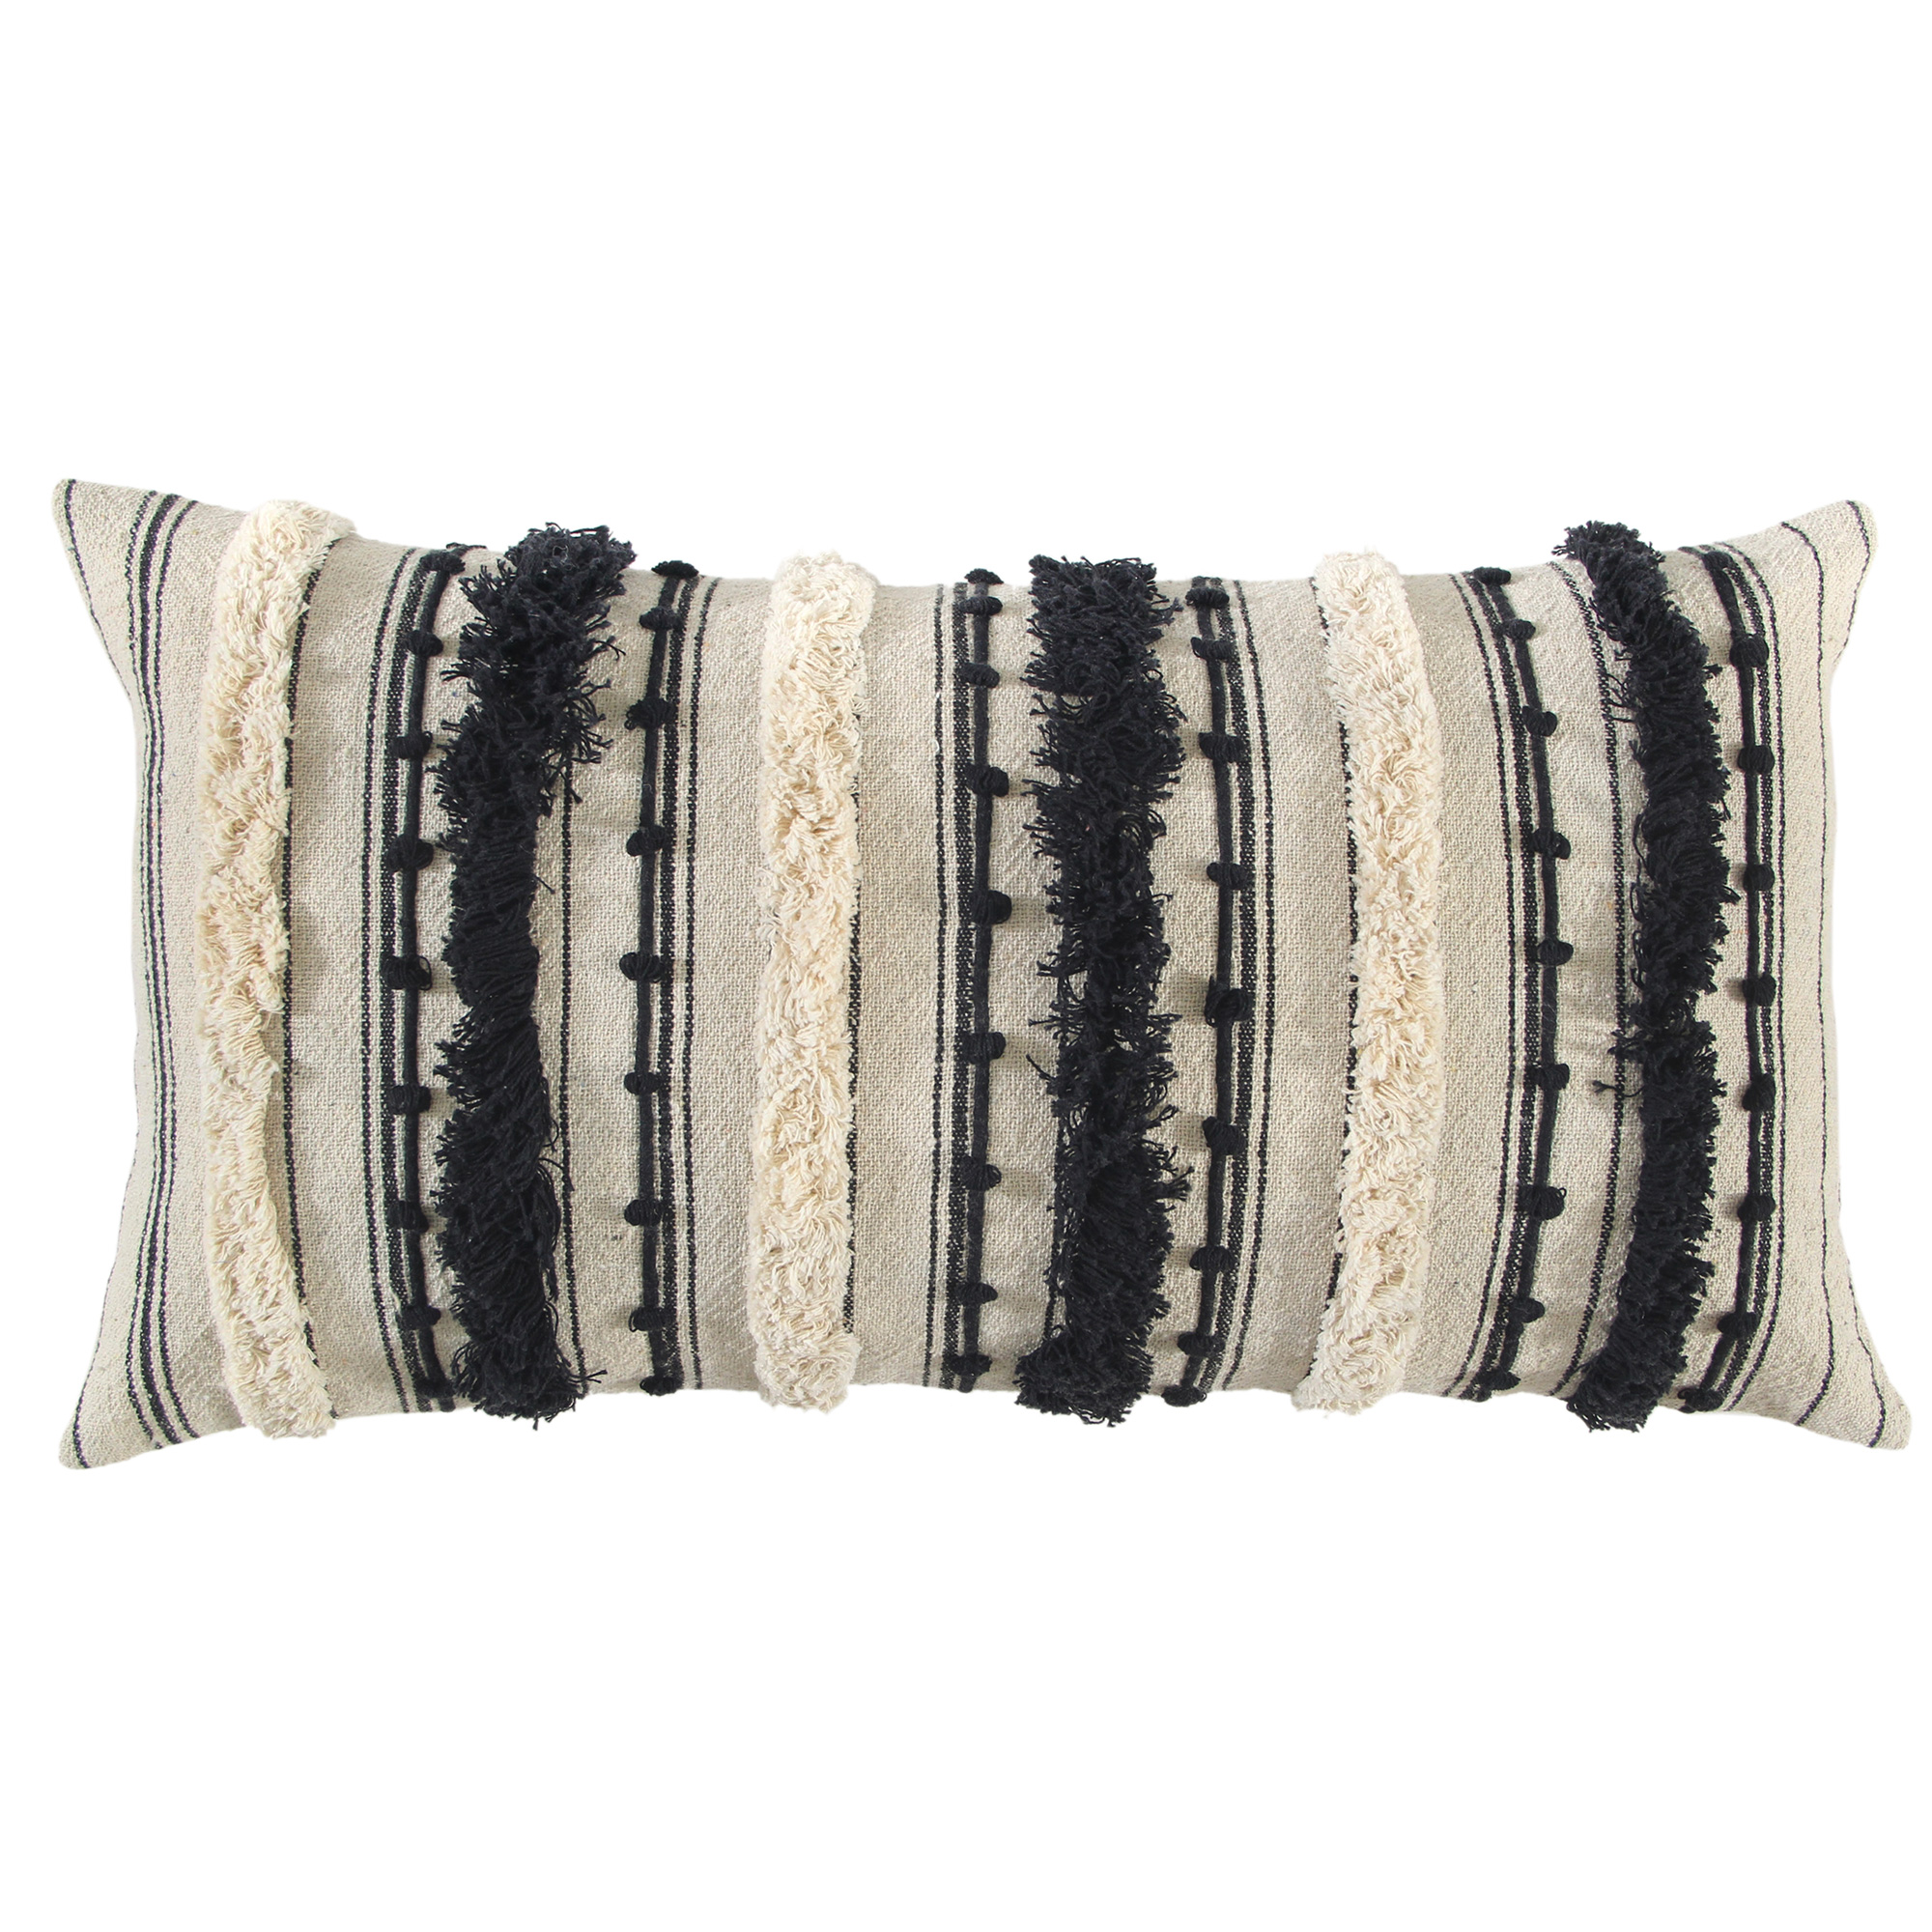 Rizzy Home | Adeline Black Down Filled Pillow